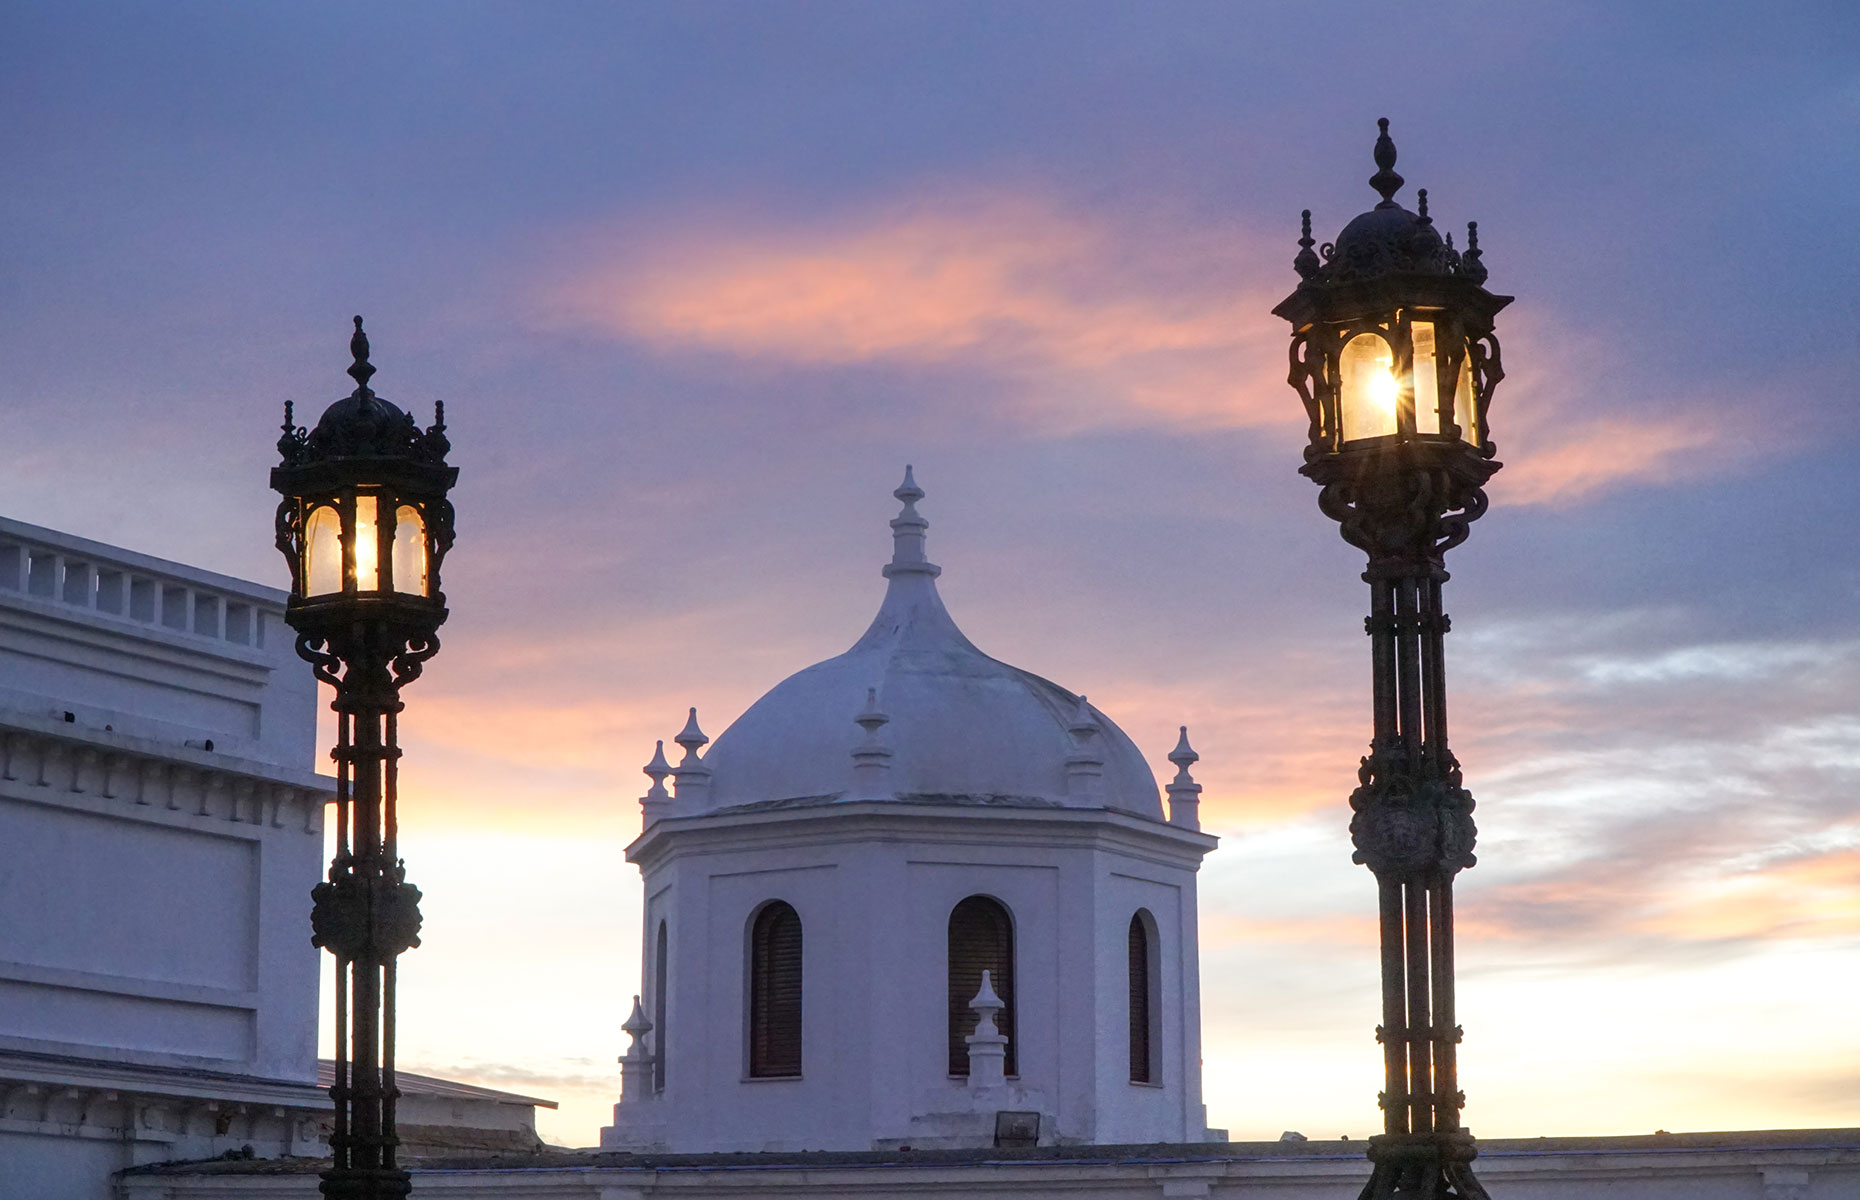 Dome building in Cadiz, Spain with sunset skyline